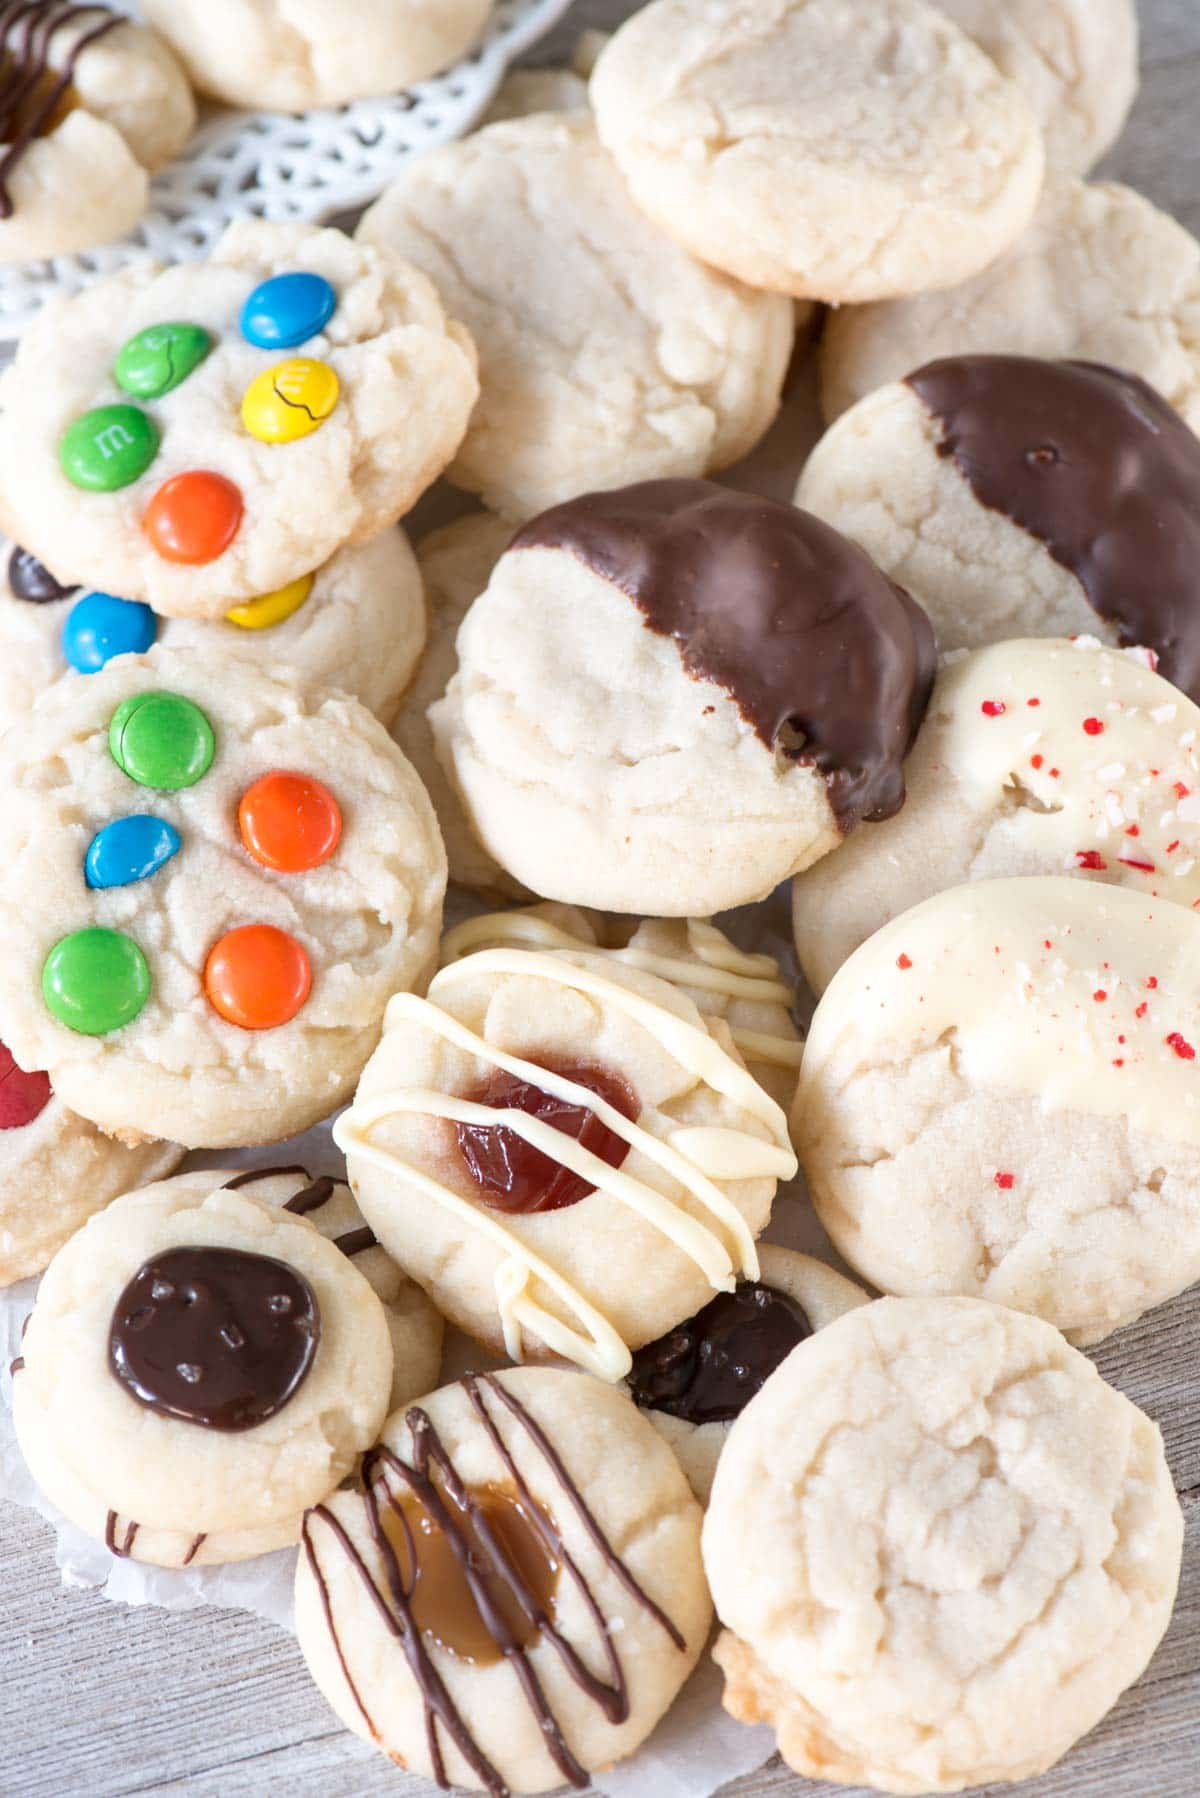 Soft and Chewy Shortbread Cookies - this easy cookie recipe has one dough and can be made 4 ways! There are only 4 ingredients in the basic shortbread dough and it bakes up to a soft and chewy cookie!